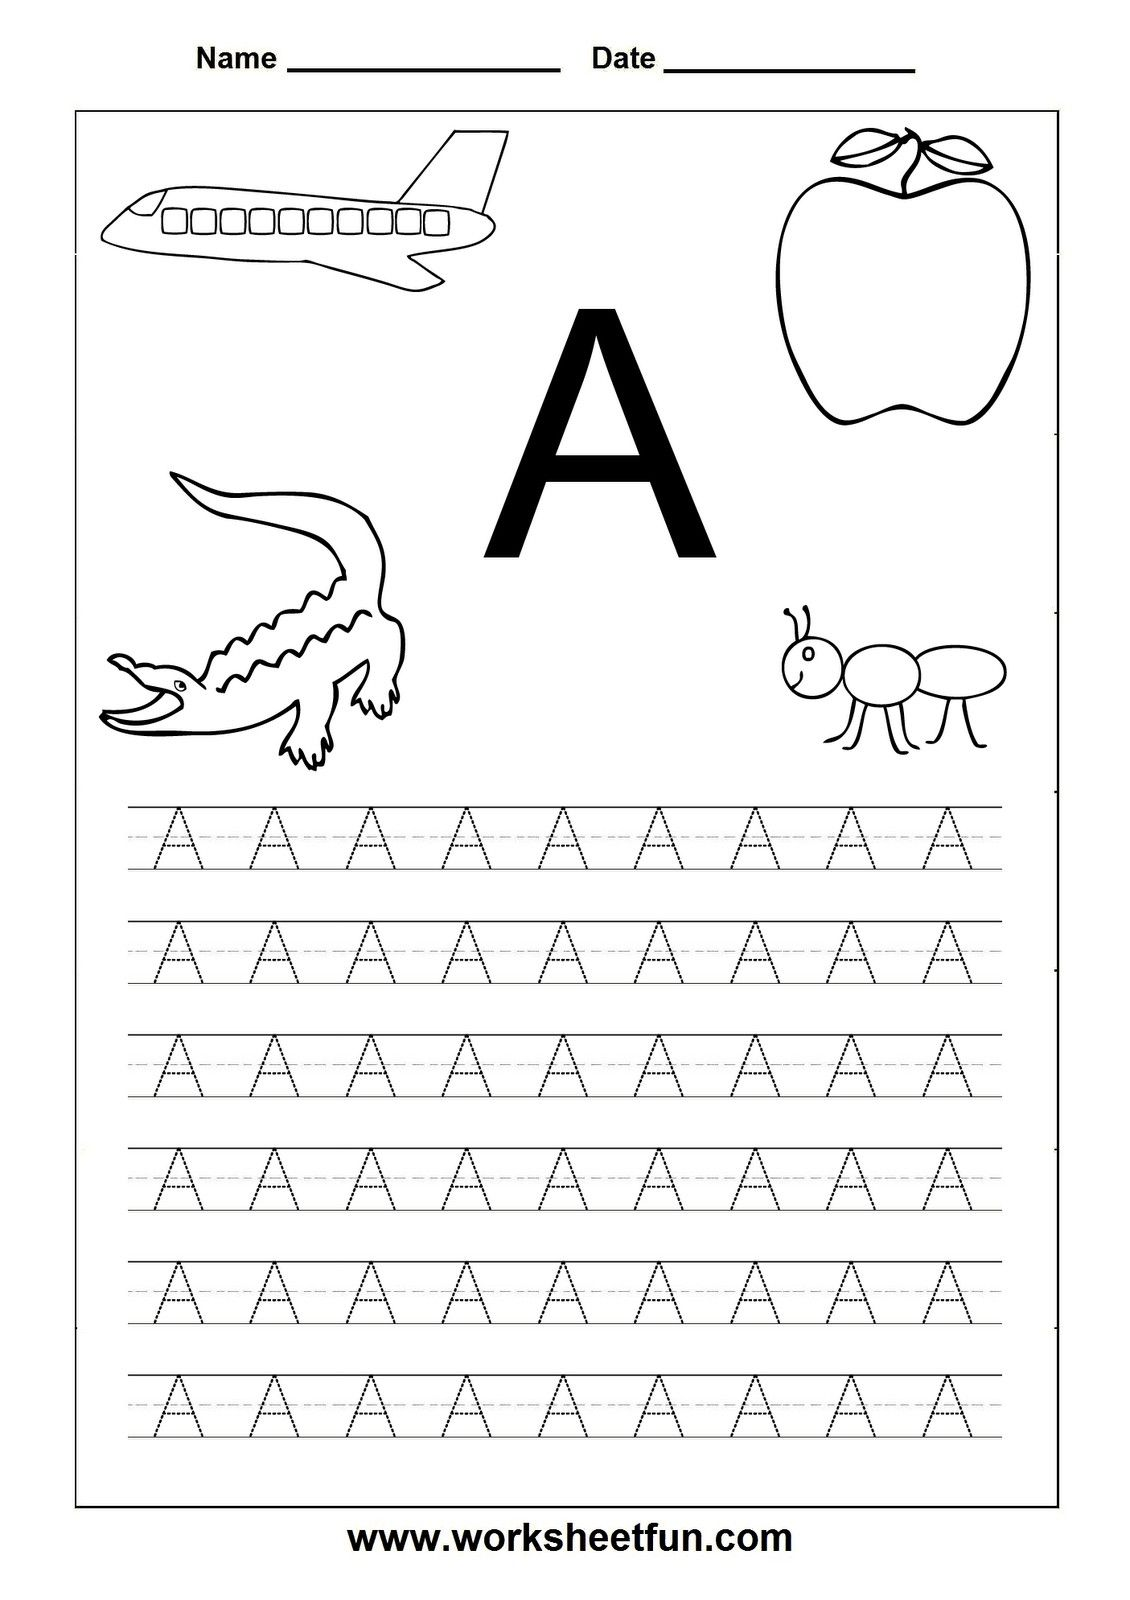 Worksheet Letter Tracing For Toddlers letter tracing for toddlers scalien 1000 images about alphabet fun on pinterest worksheets